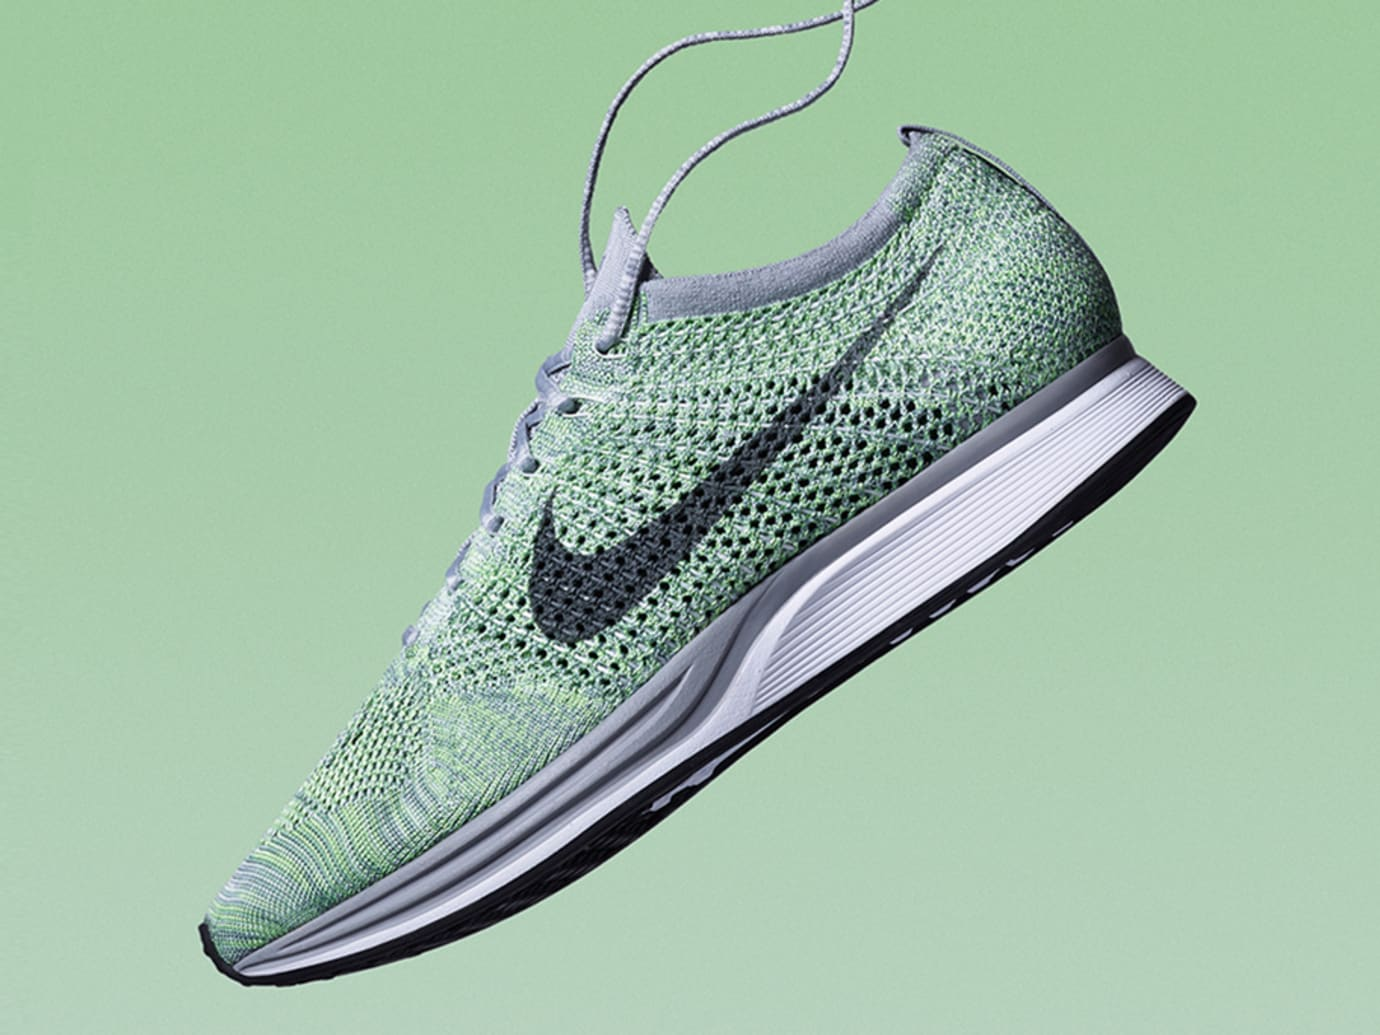 low priced 3c075 1933f Image via Nike Nike Flyknit Racer